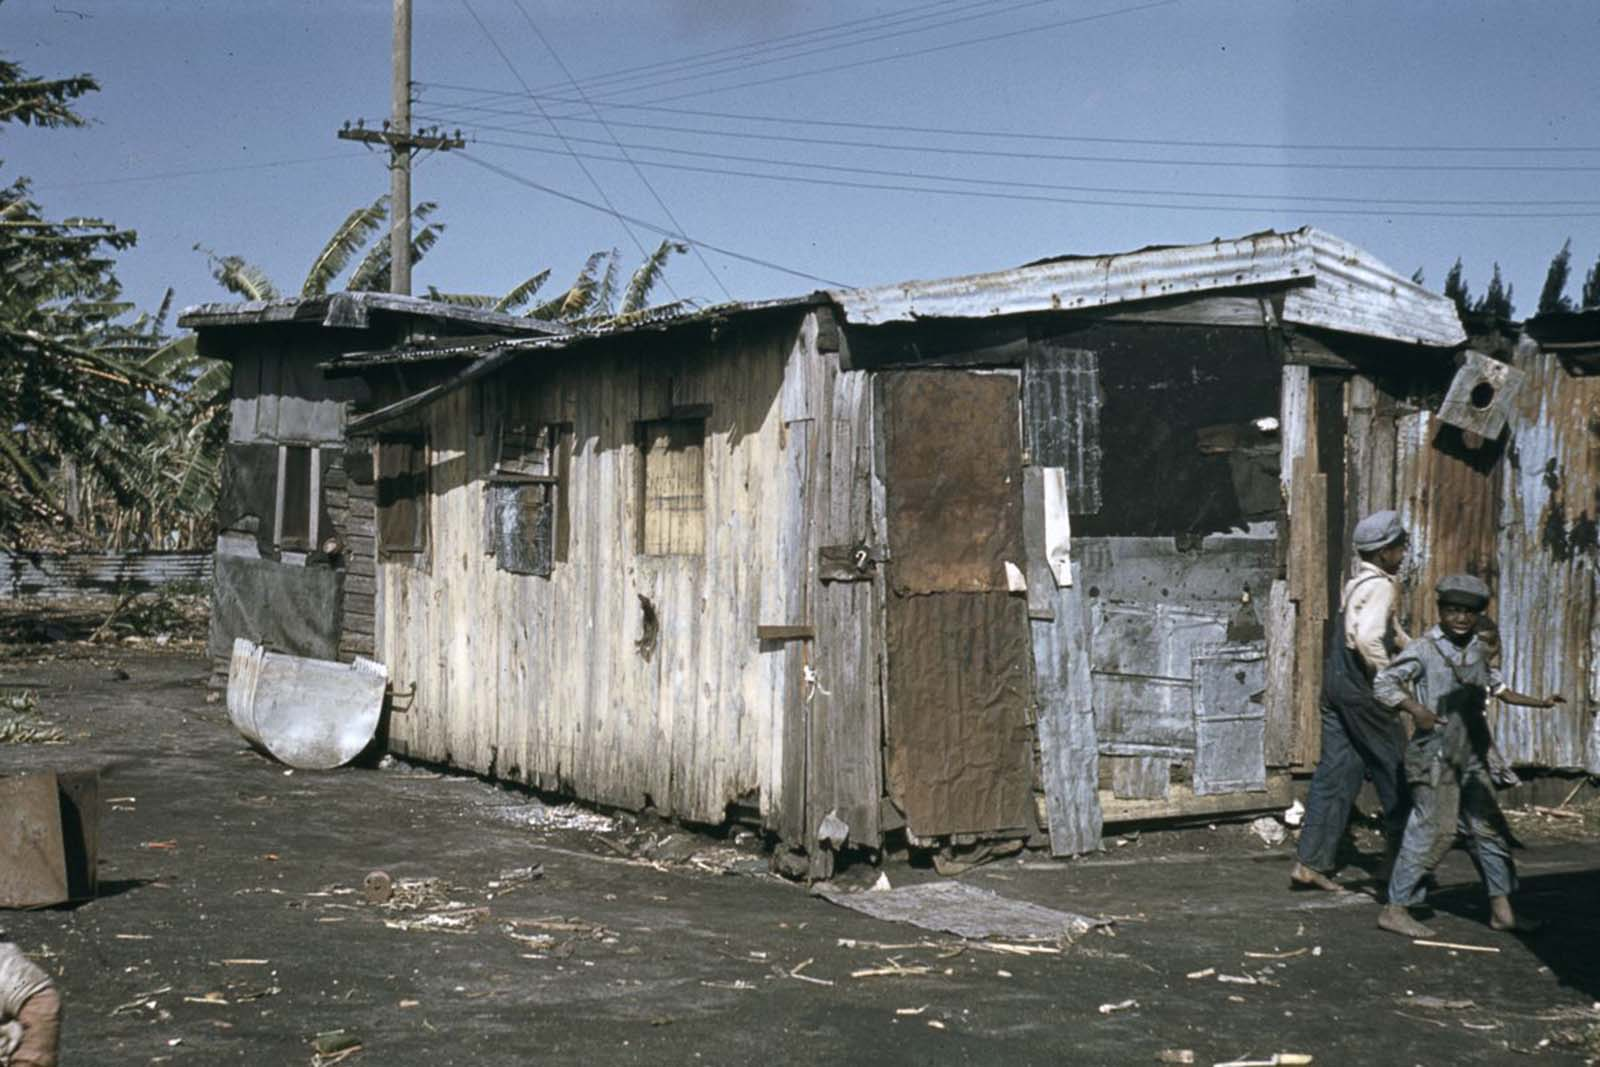 Housing for migrant workers in Belle Glade, Florida. 1941.